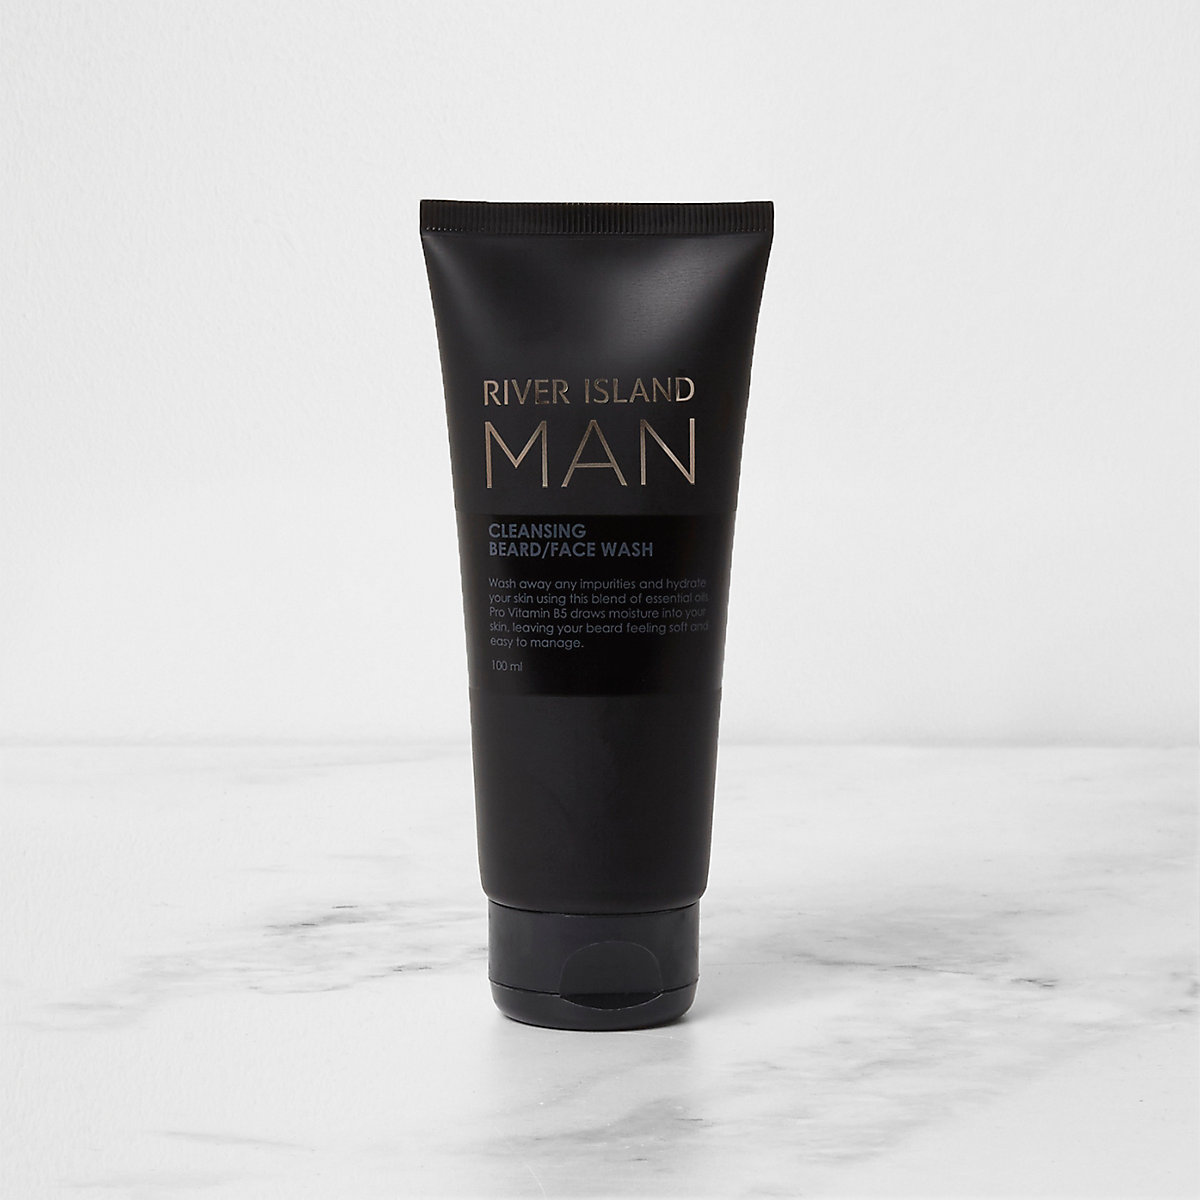 River Island Man beard and face wash